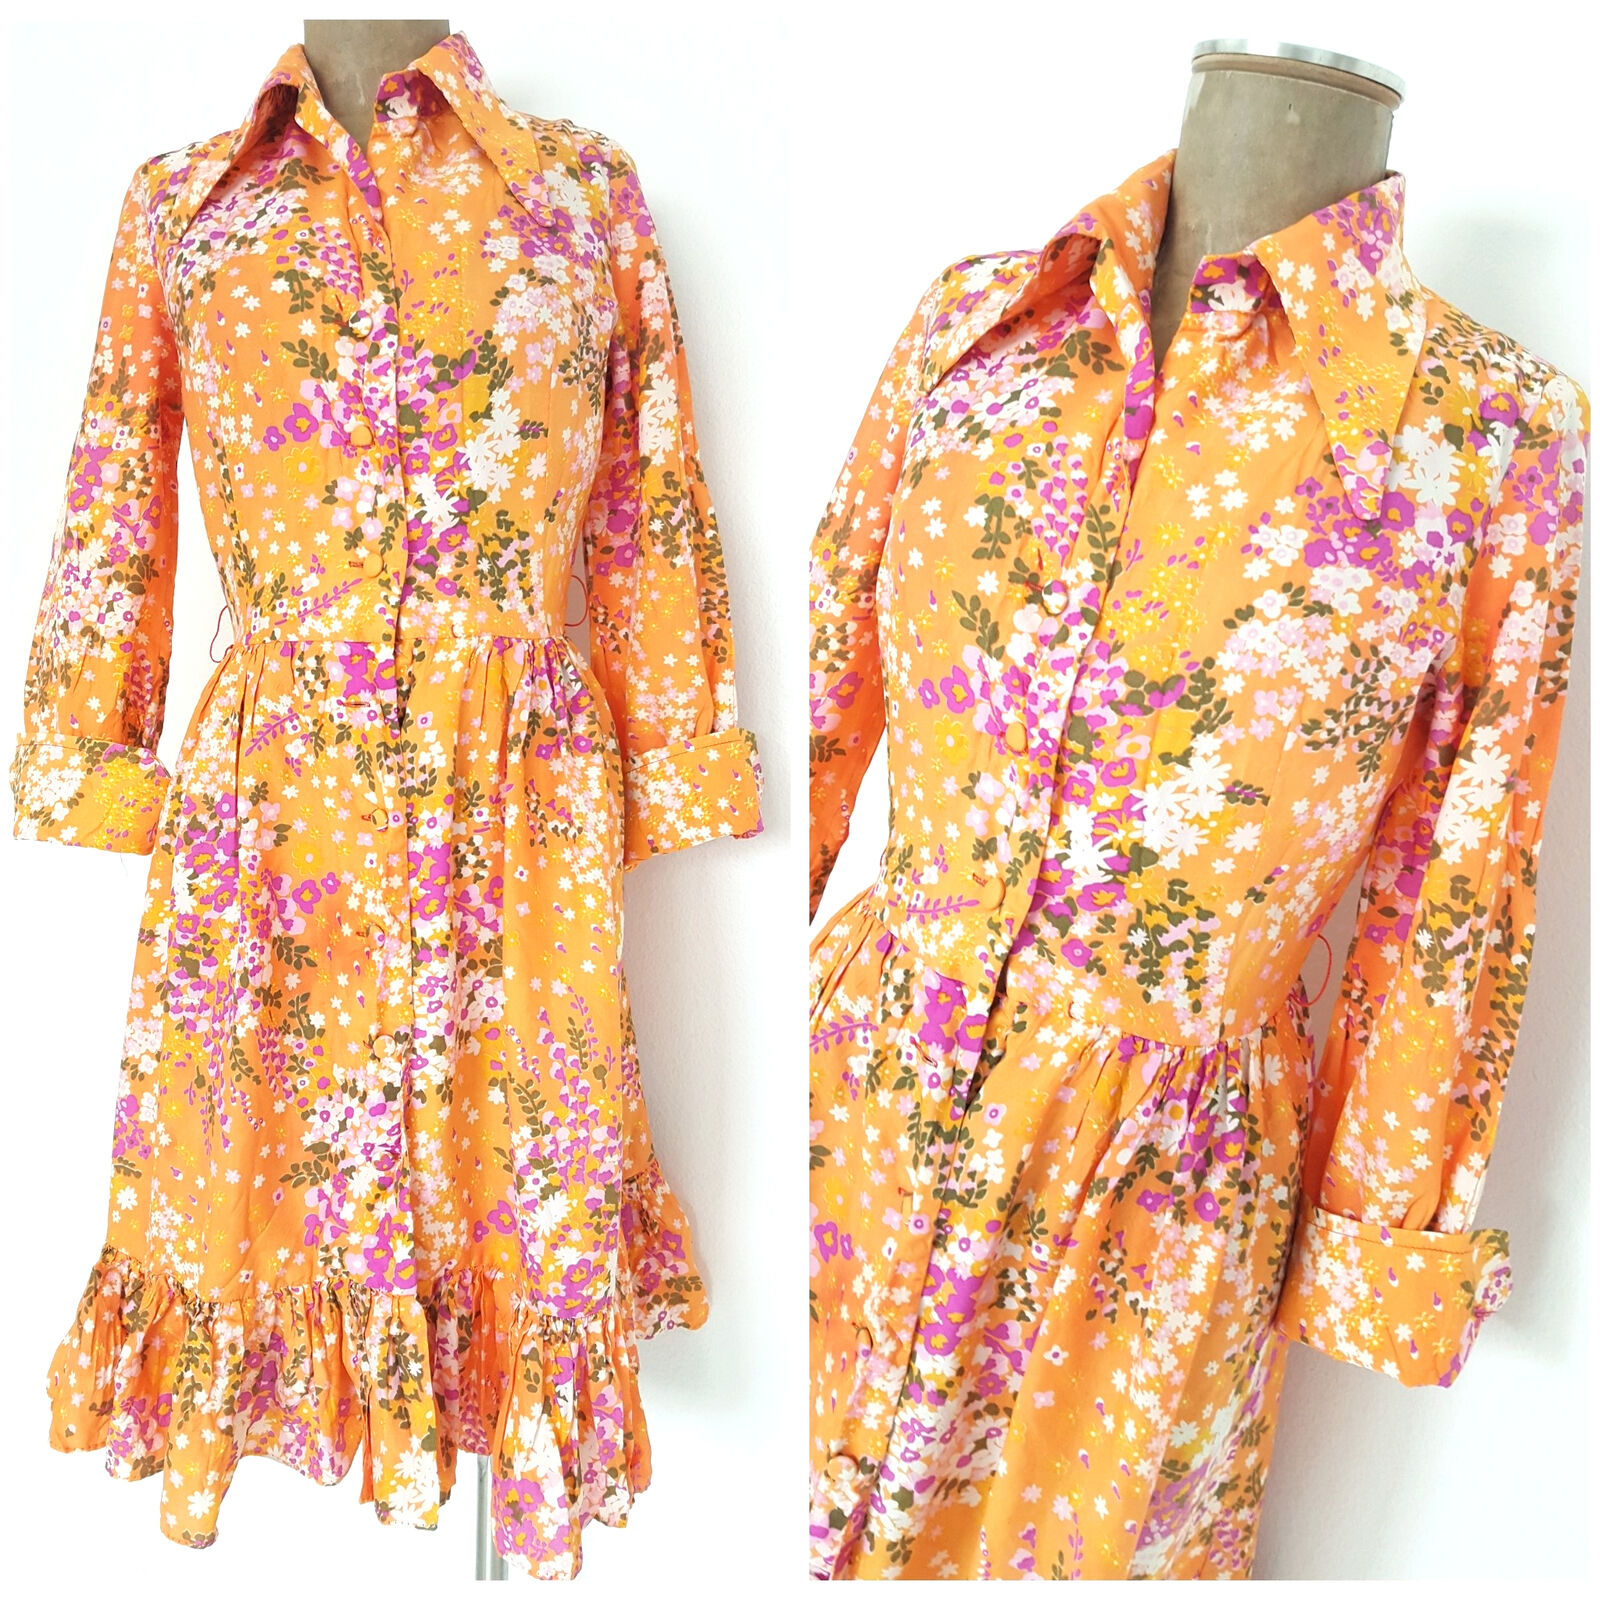 Vintage 50s Carroll's Easter Ruffle Floral Dress Size Small Festive Party Pinup